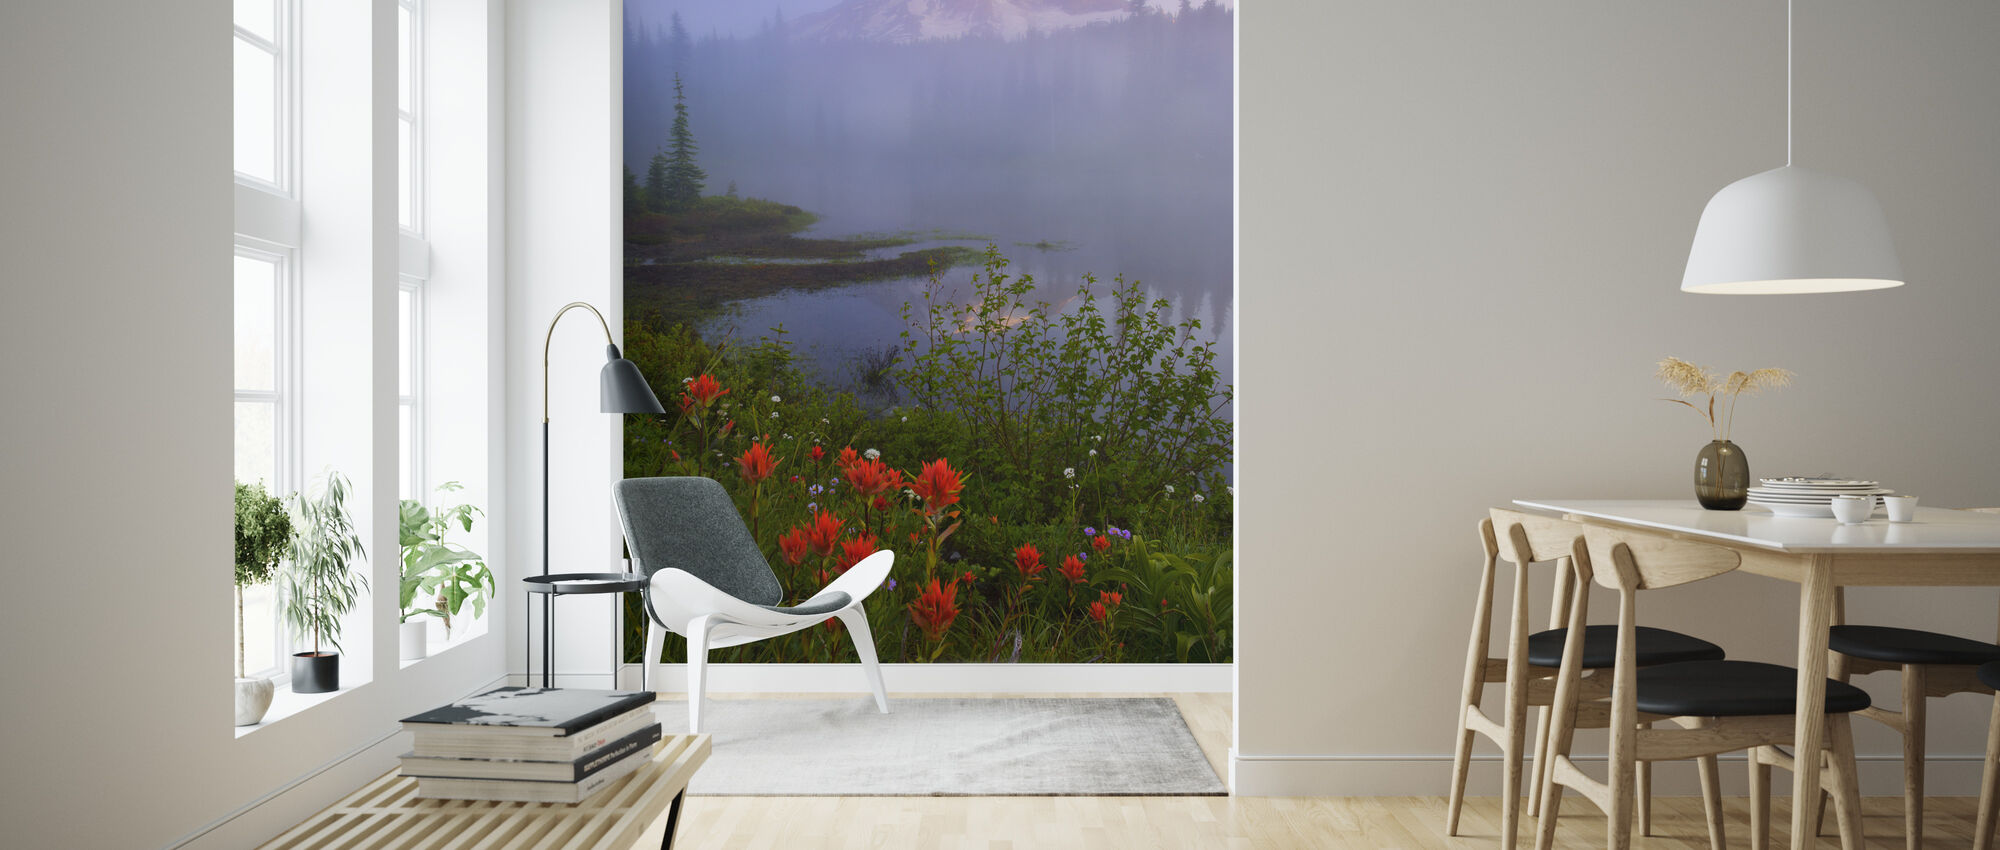 Early Summer Morning, Rainier National Park - Wallpaper - Living Room